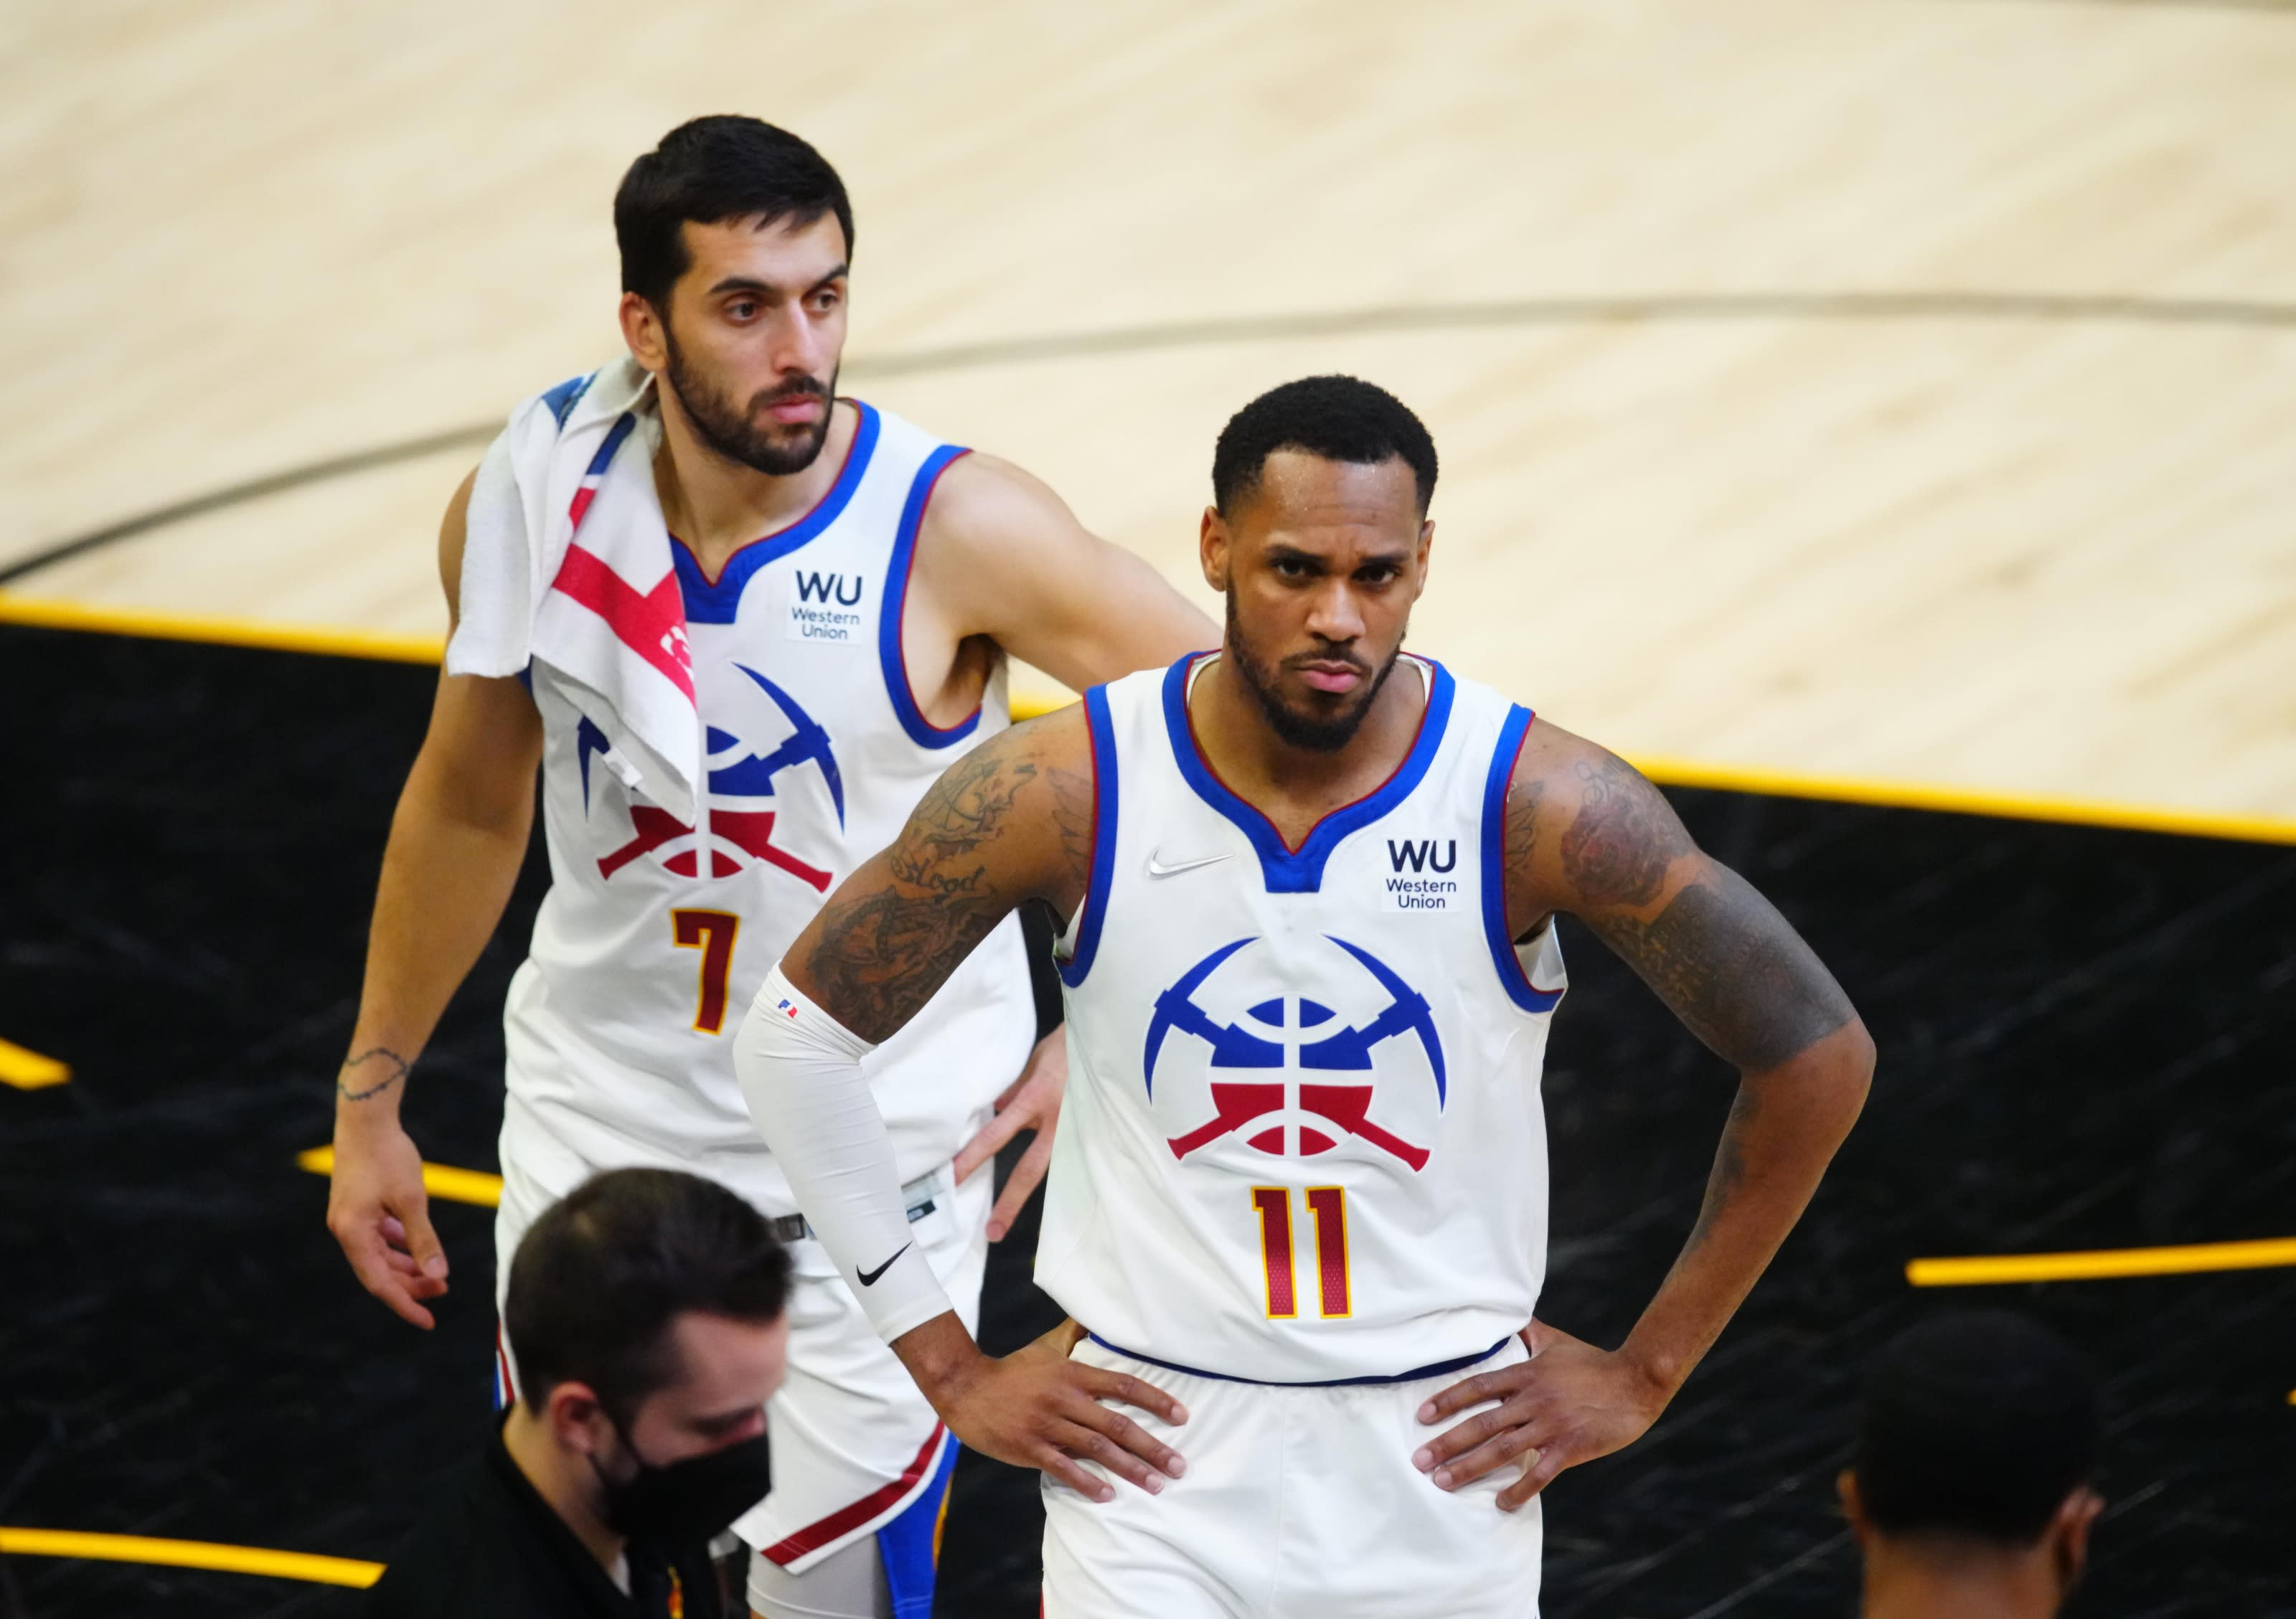 Denver Nuggets guard Monte Morris and guard Facundo Campazzo react against the Phoenix Suns in the second half during Game 2 in the second round of the 2021 NBA Playoffs on 9 Jun. 2021 (Mark J. Rebilas-USA TODAY Sports)